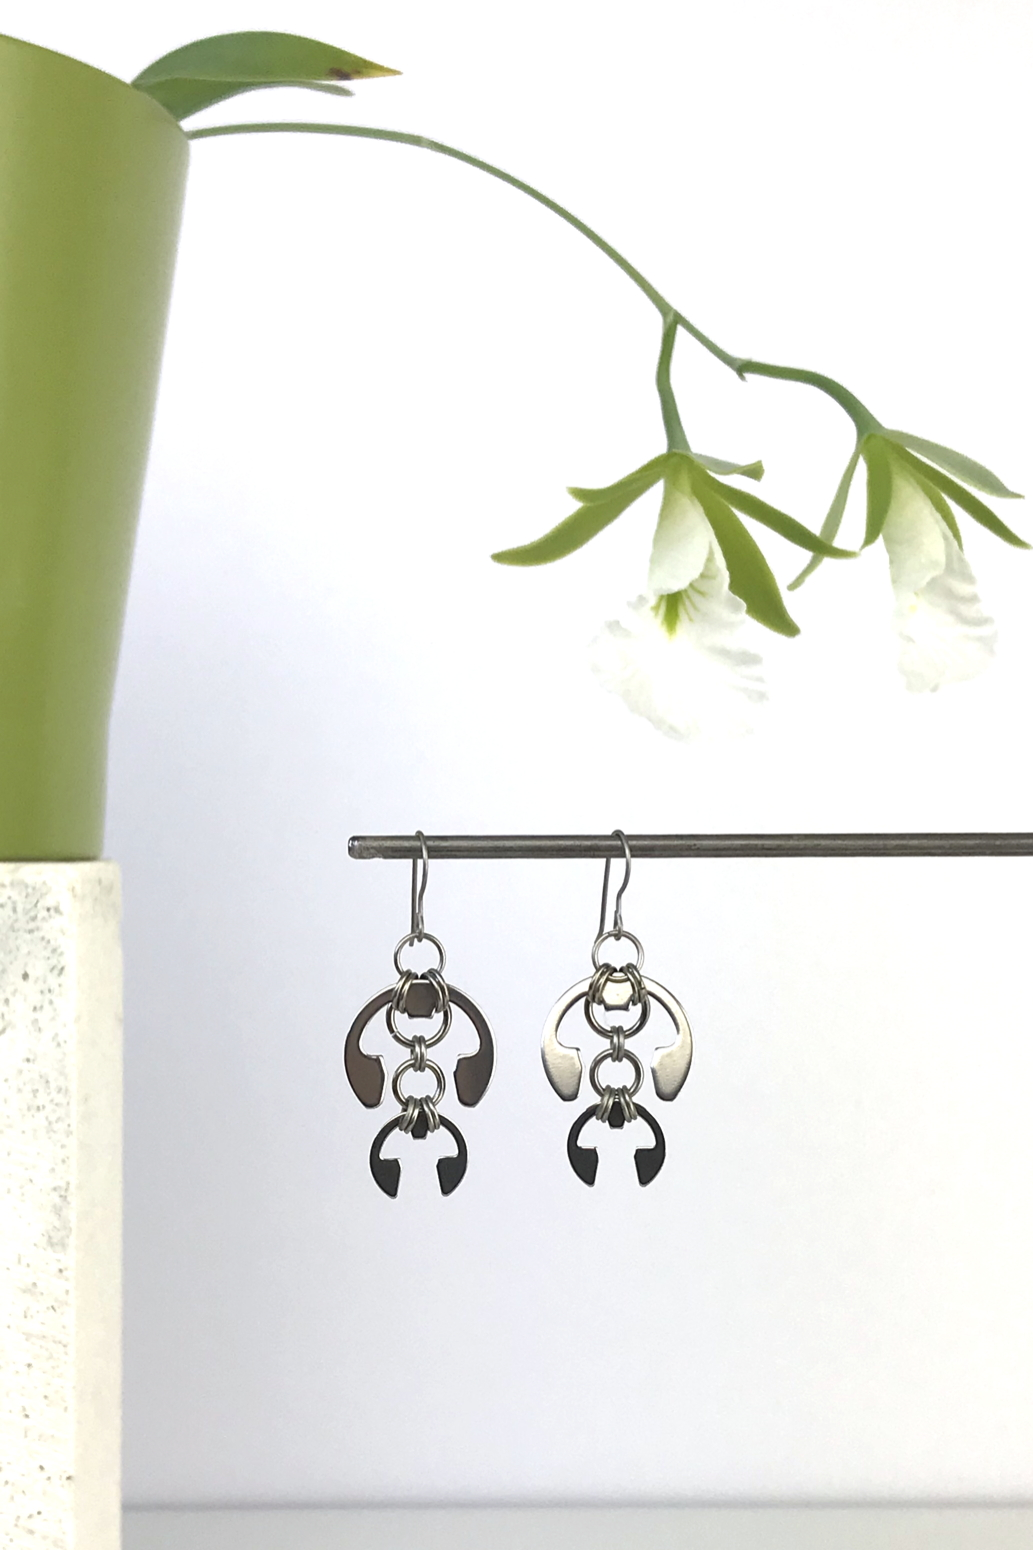 Wraptillion's Hops Earrings with blooming orchid Encyclia mariae.